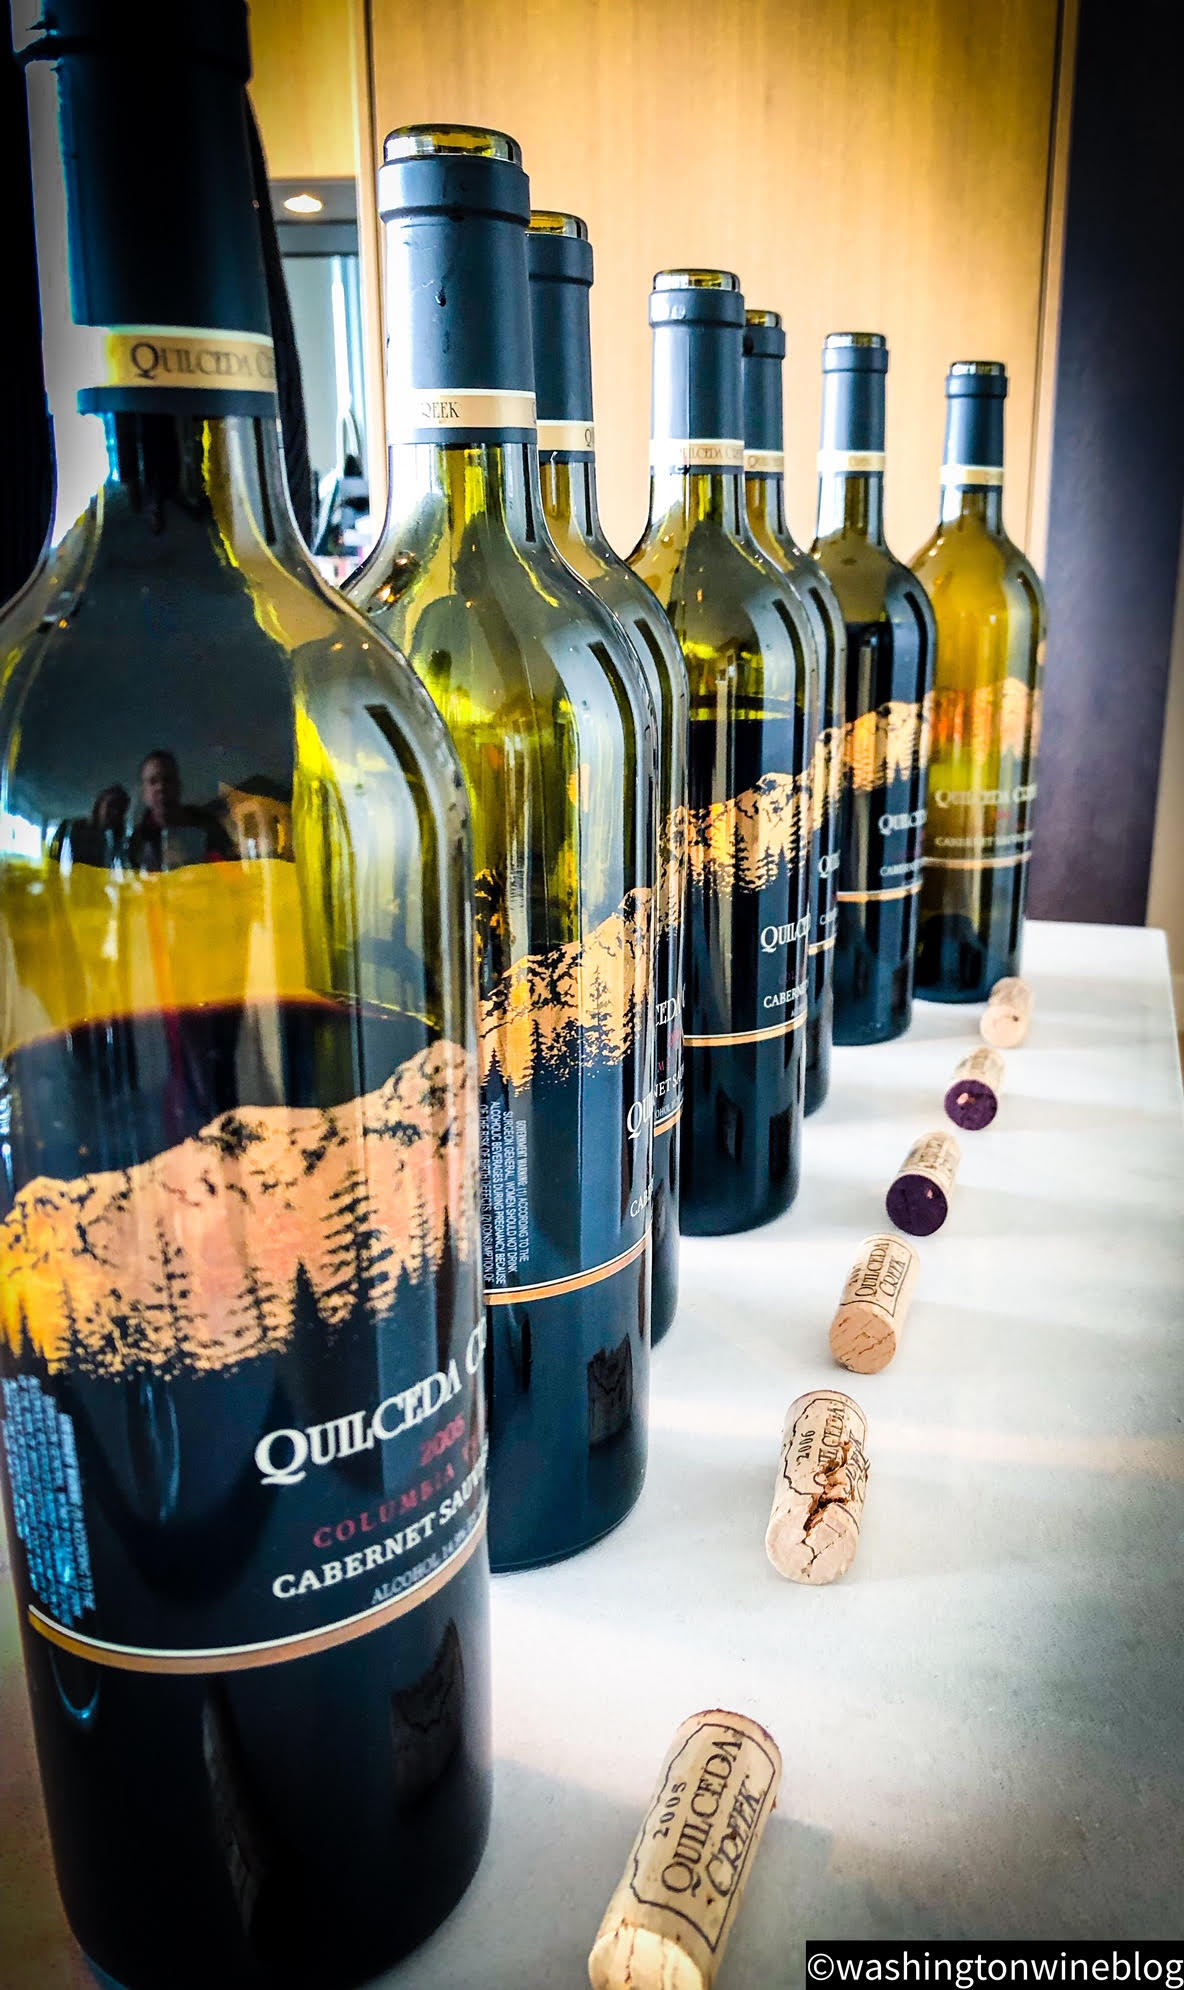 It was a magical tasting of Quilceda Creek Cabernet Sauvignon from the 2004-10 vintages.